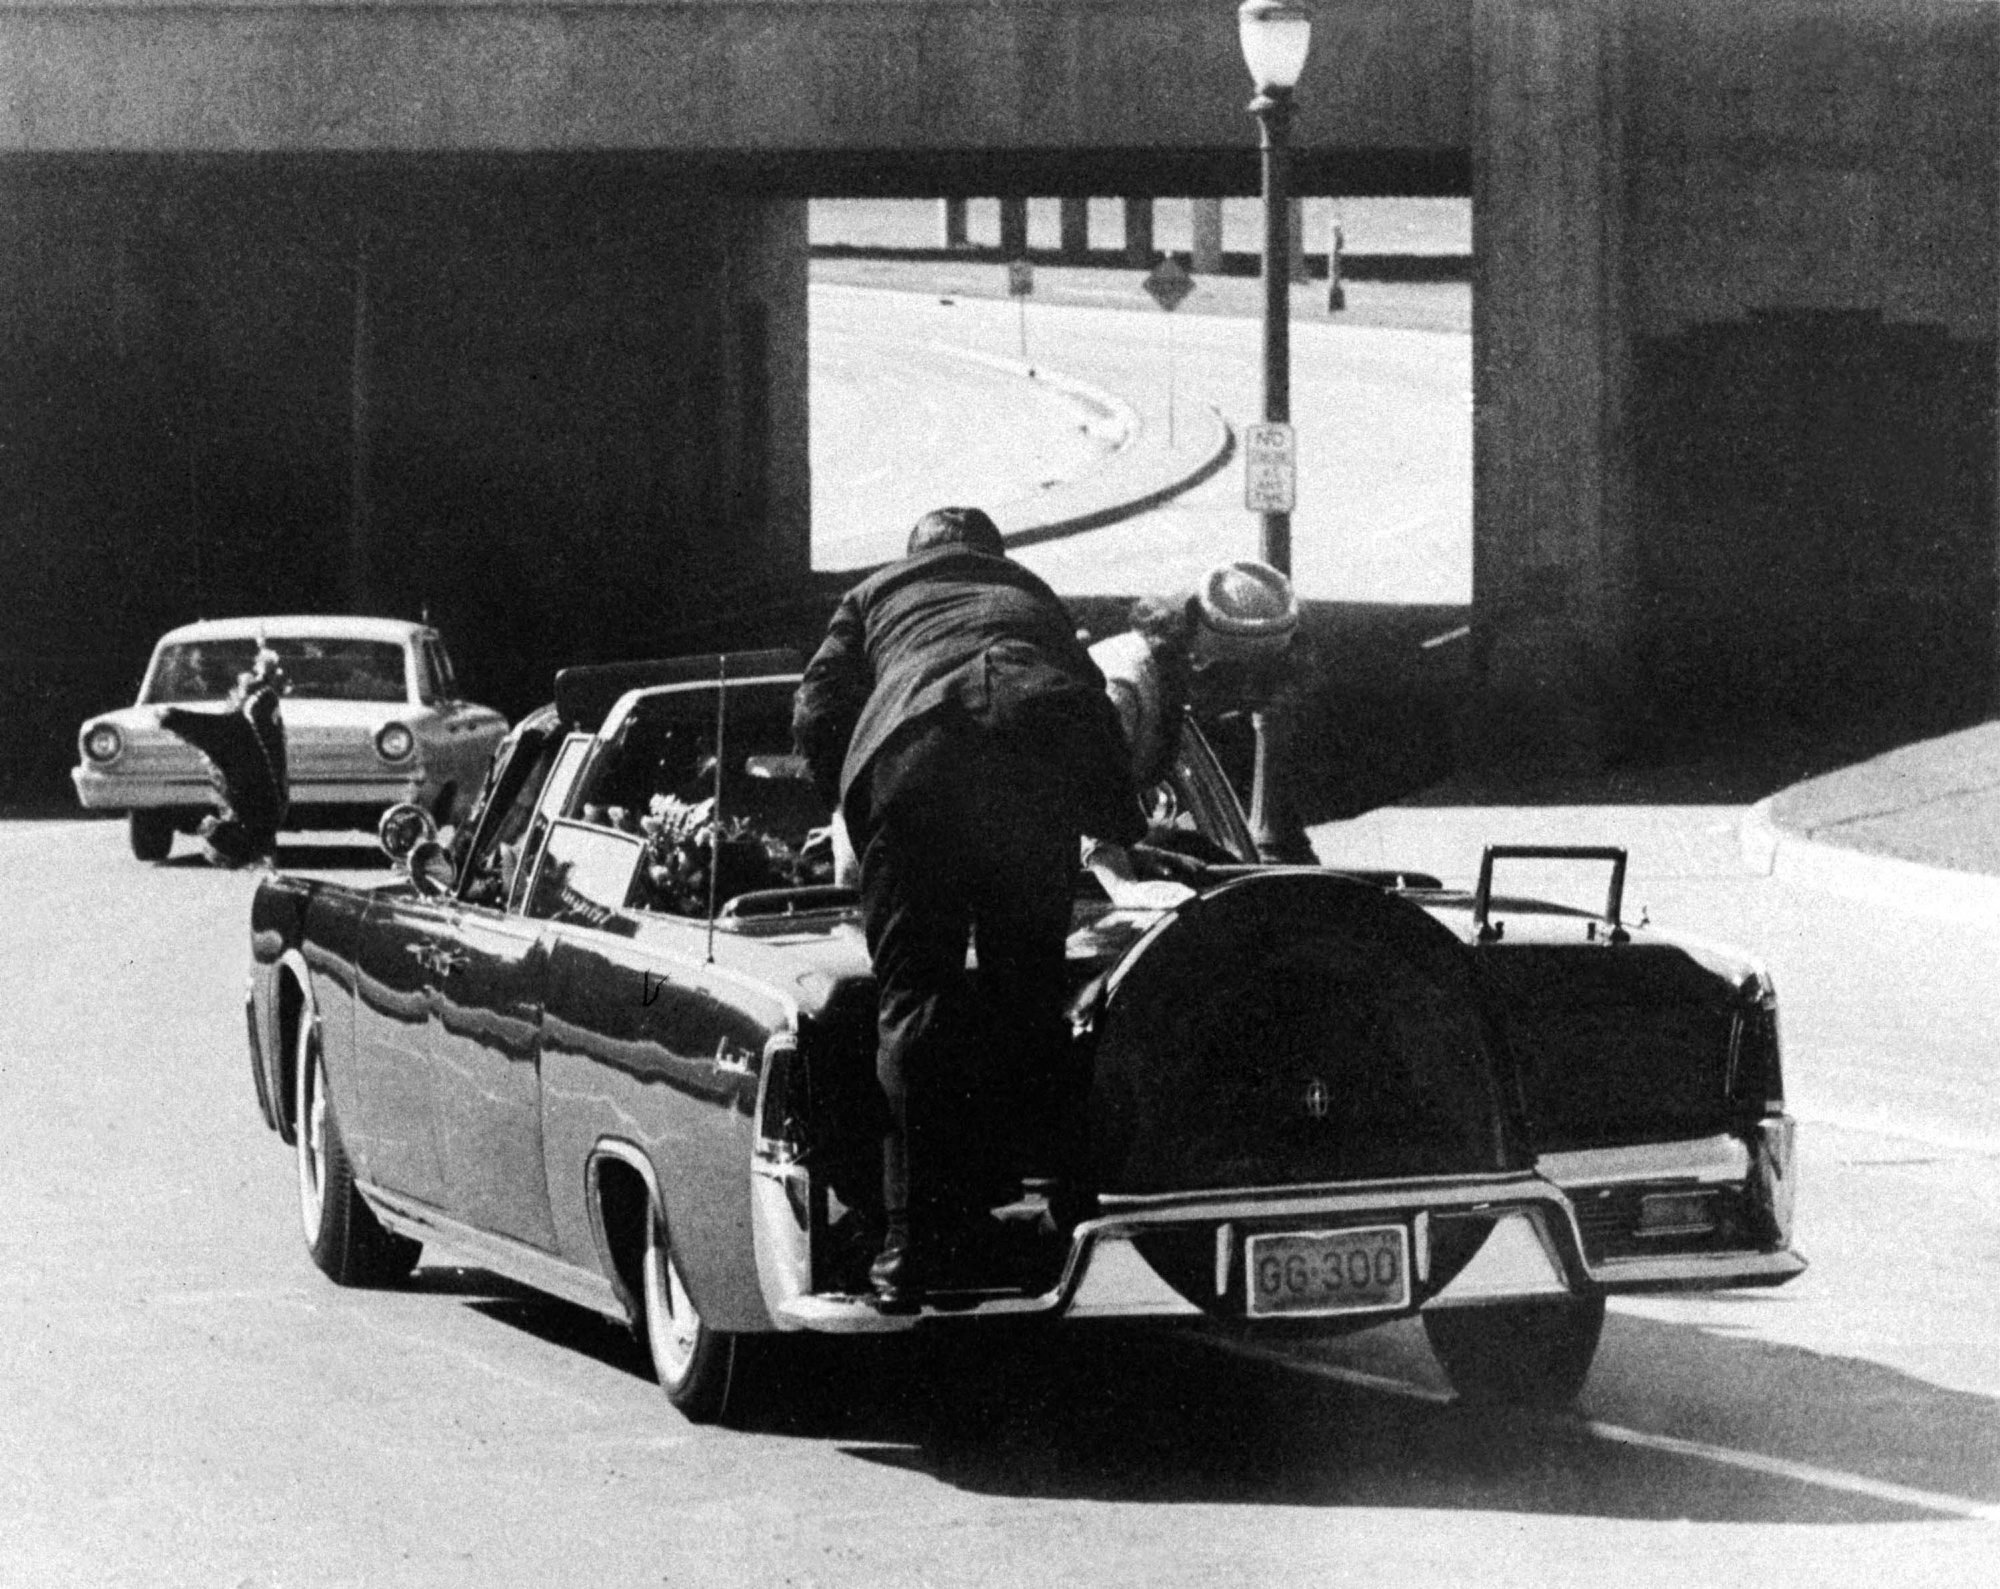 Photo shows Clint Hill climbing on the back of limousine as the first lady climbs out to retrieve what he later realized was brain matter from the slain president.